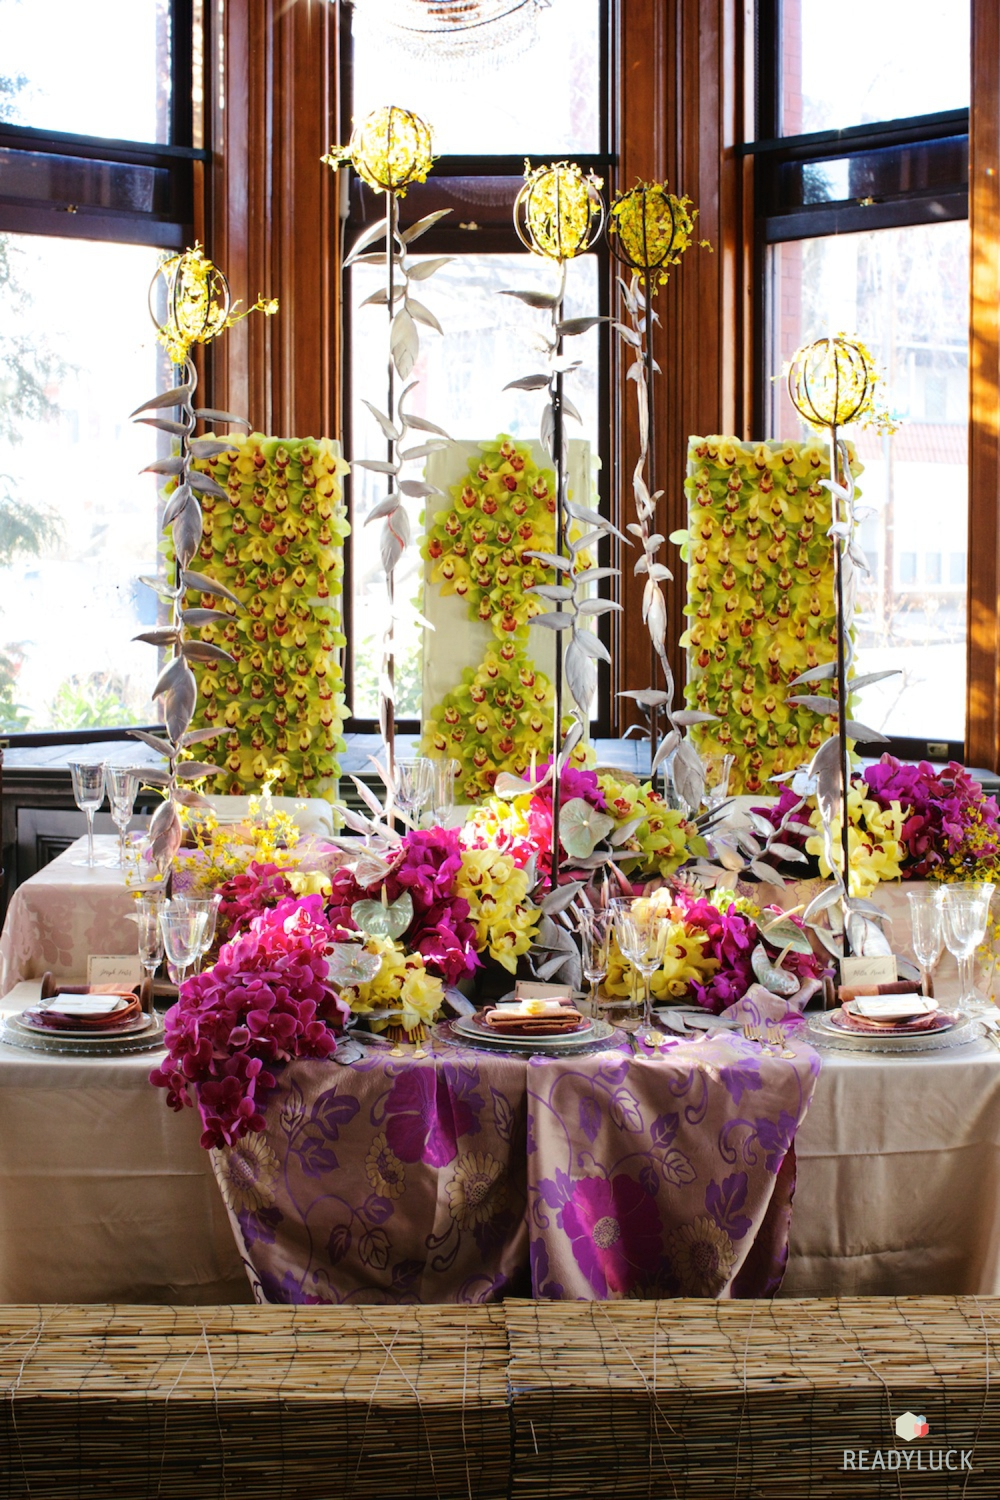 Editorial wedding table setting with flowers